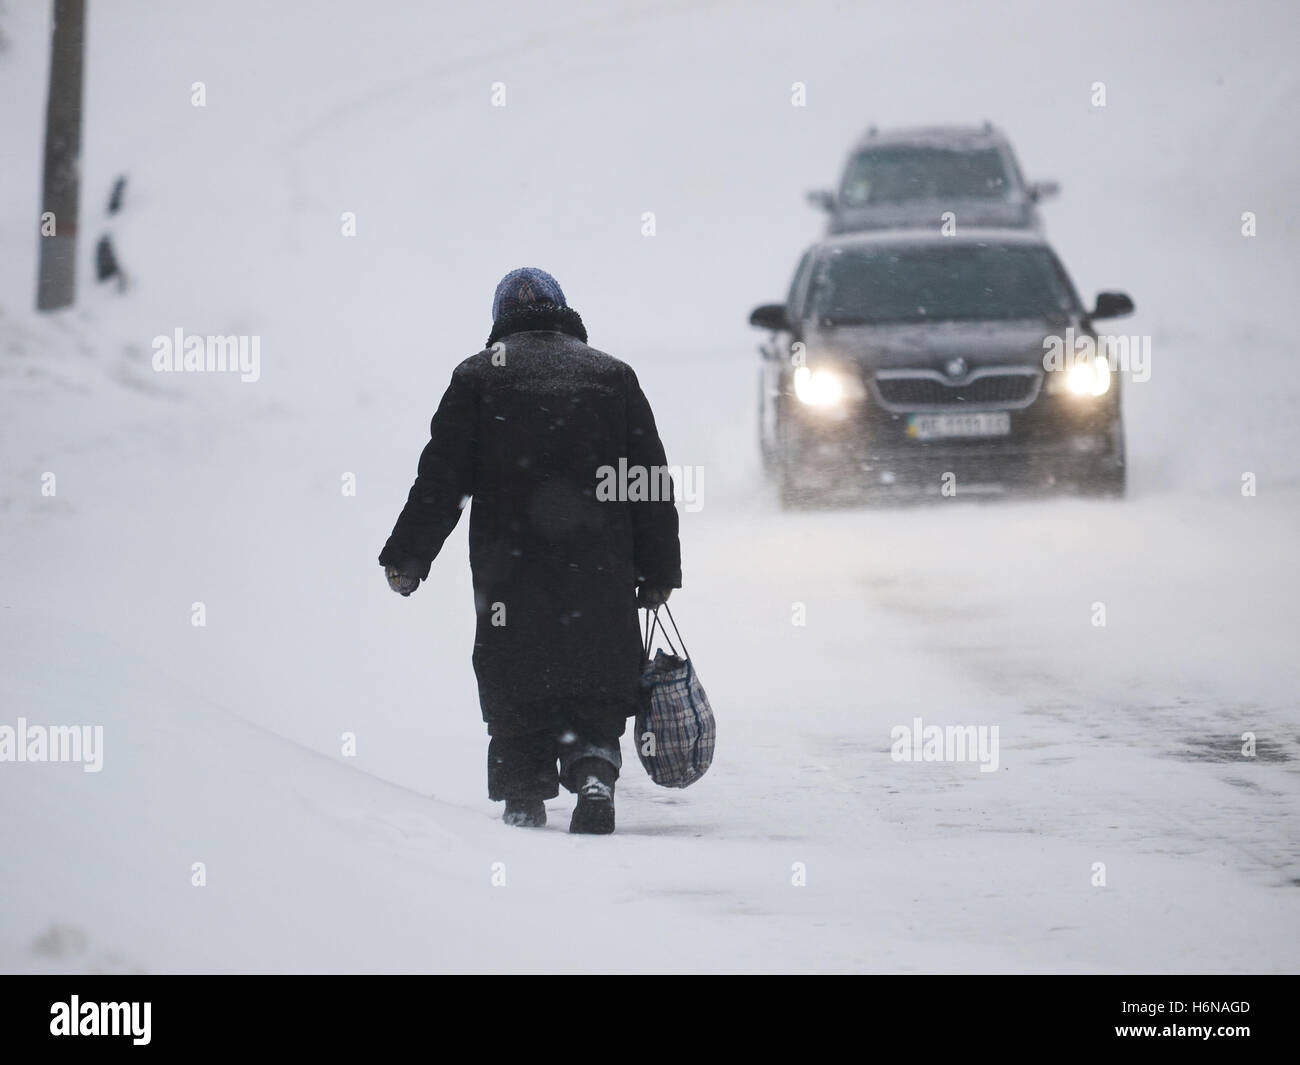 Kryvyi Rih, Ukraine - January, 18, 2016: Old indigent woman in old fur coat with shopping bag wander along the snowbound - Stock Image